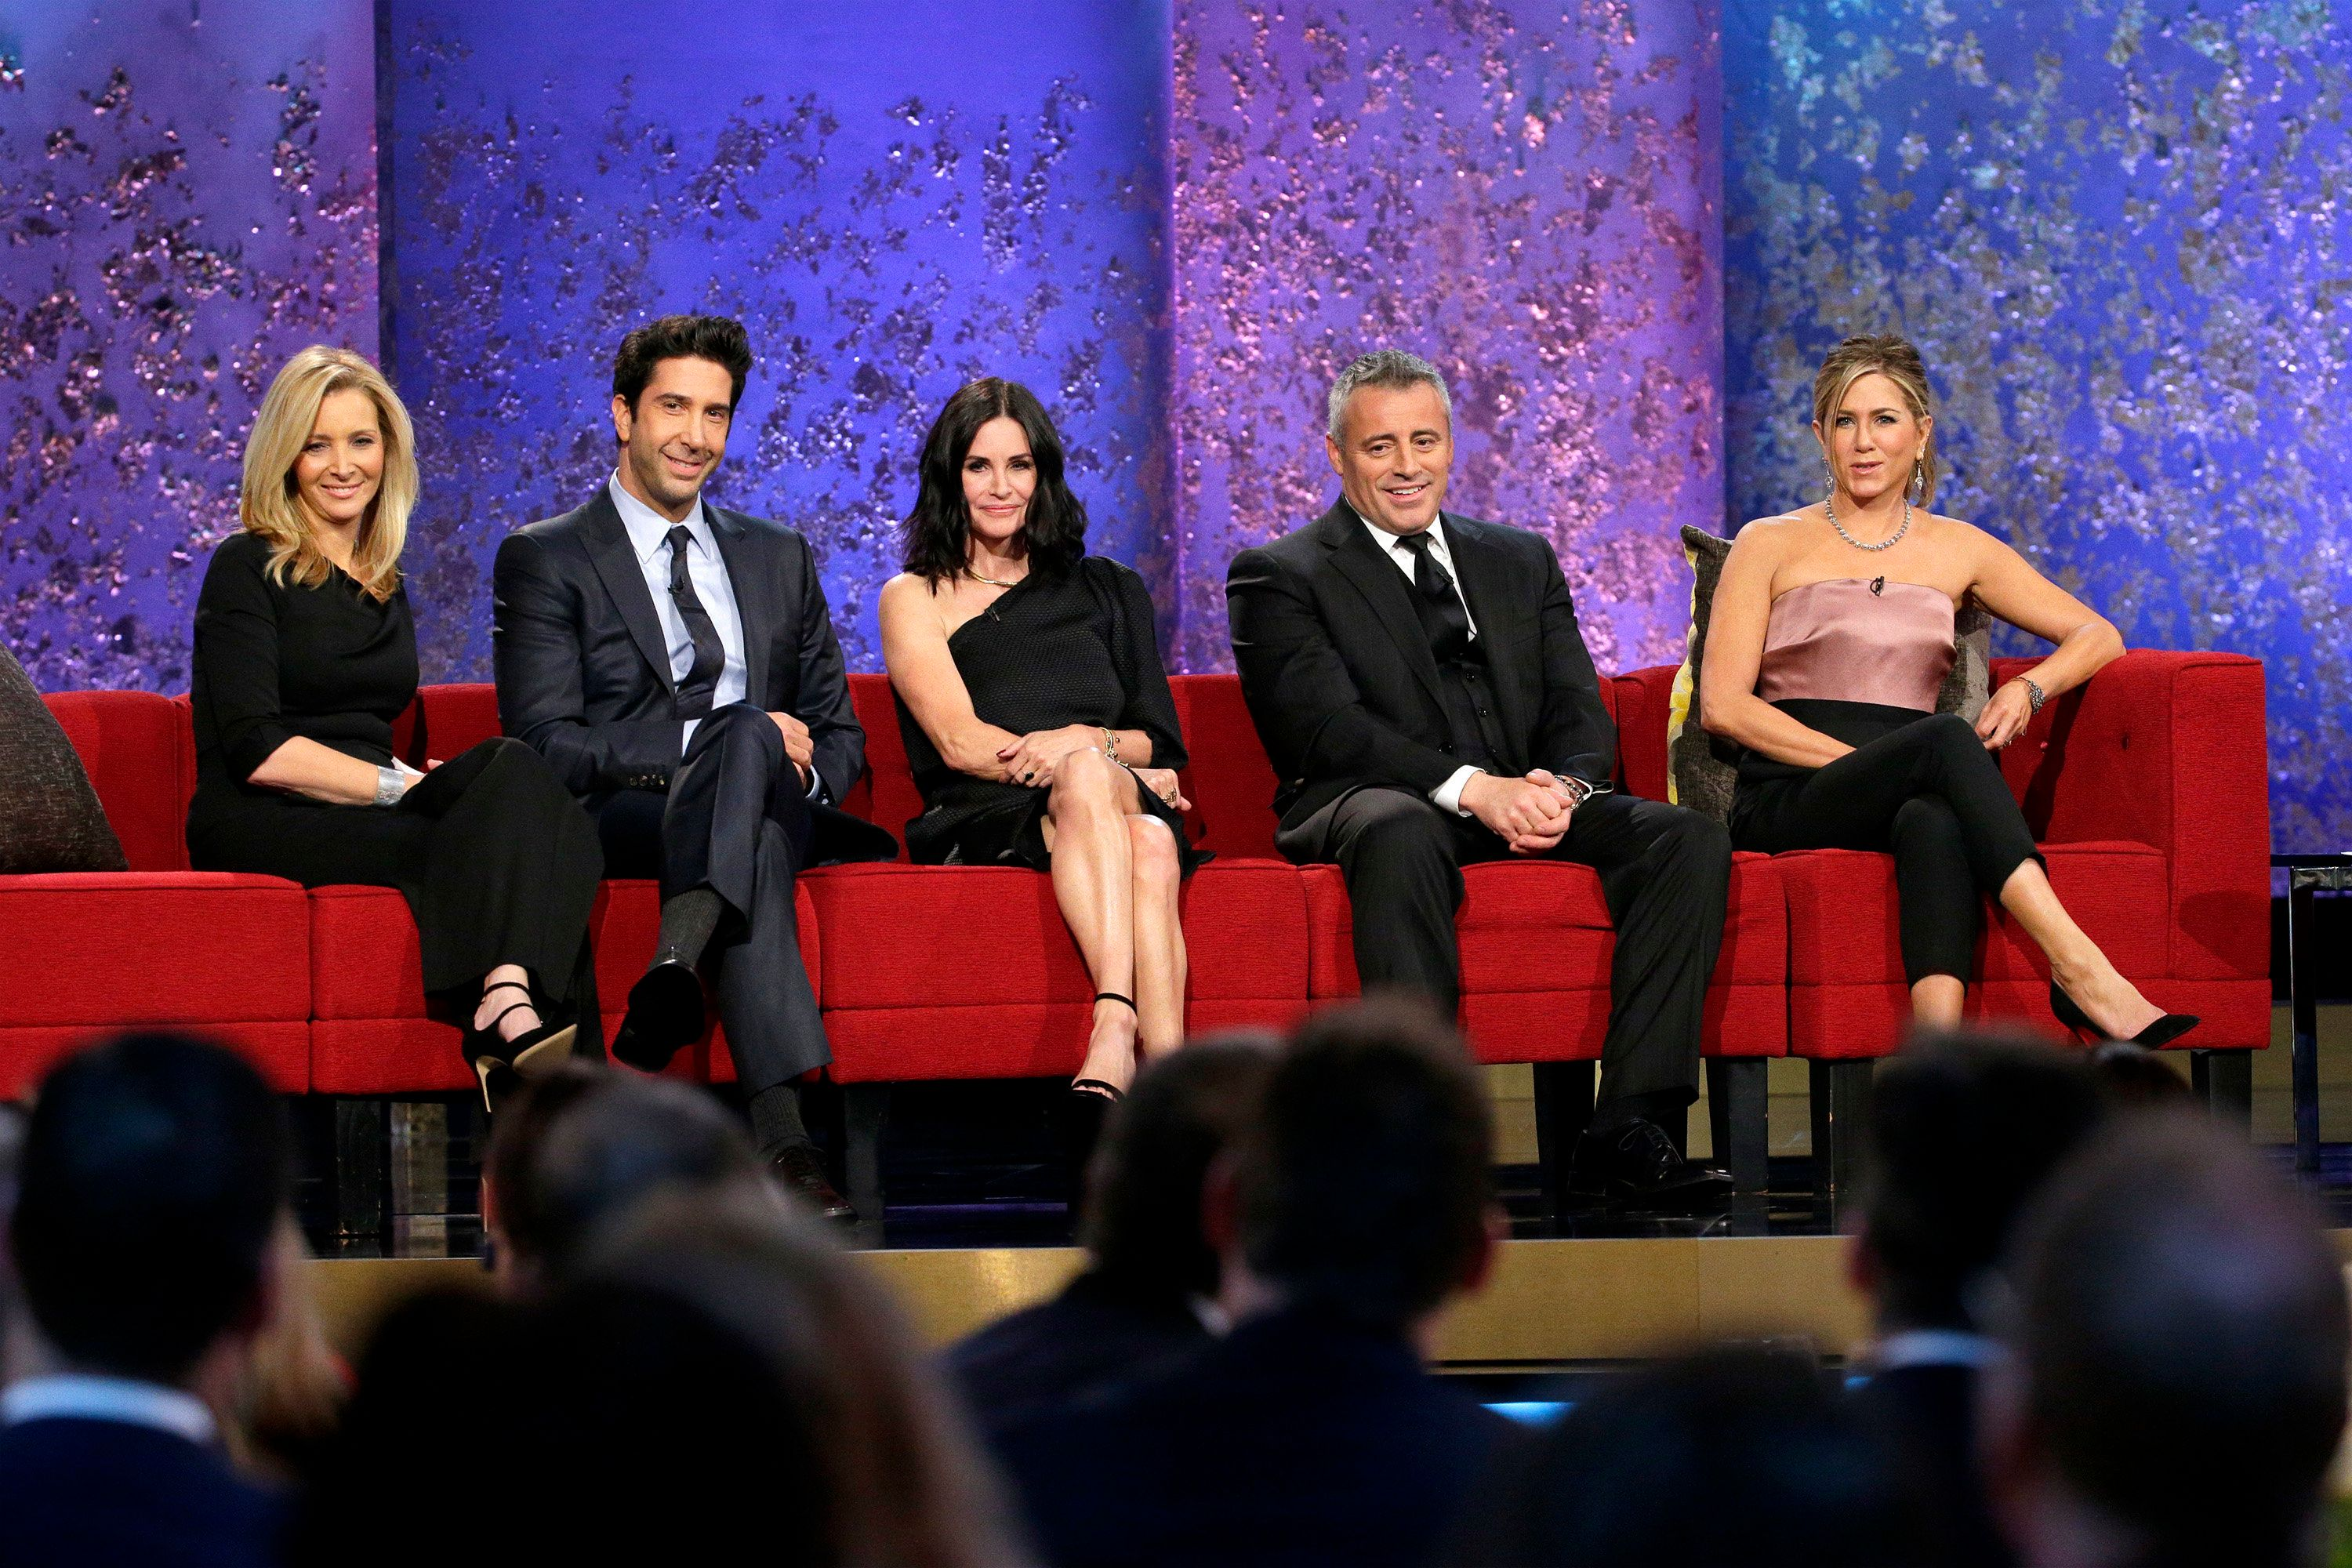 MUST SEE TV: AN ALL-STAR TRIBUTE TO JAMES BURROWS -- Pictured: (l-r) Lisa Kudrow, David Schwimmer, Courteneey Cox, Matt LeBlanc, Jennifer Aniston -- (Photo by: Chris Haston/NBCNBCU Photo Bank)